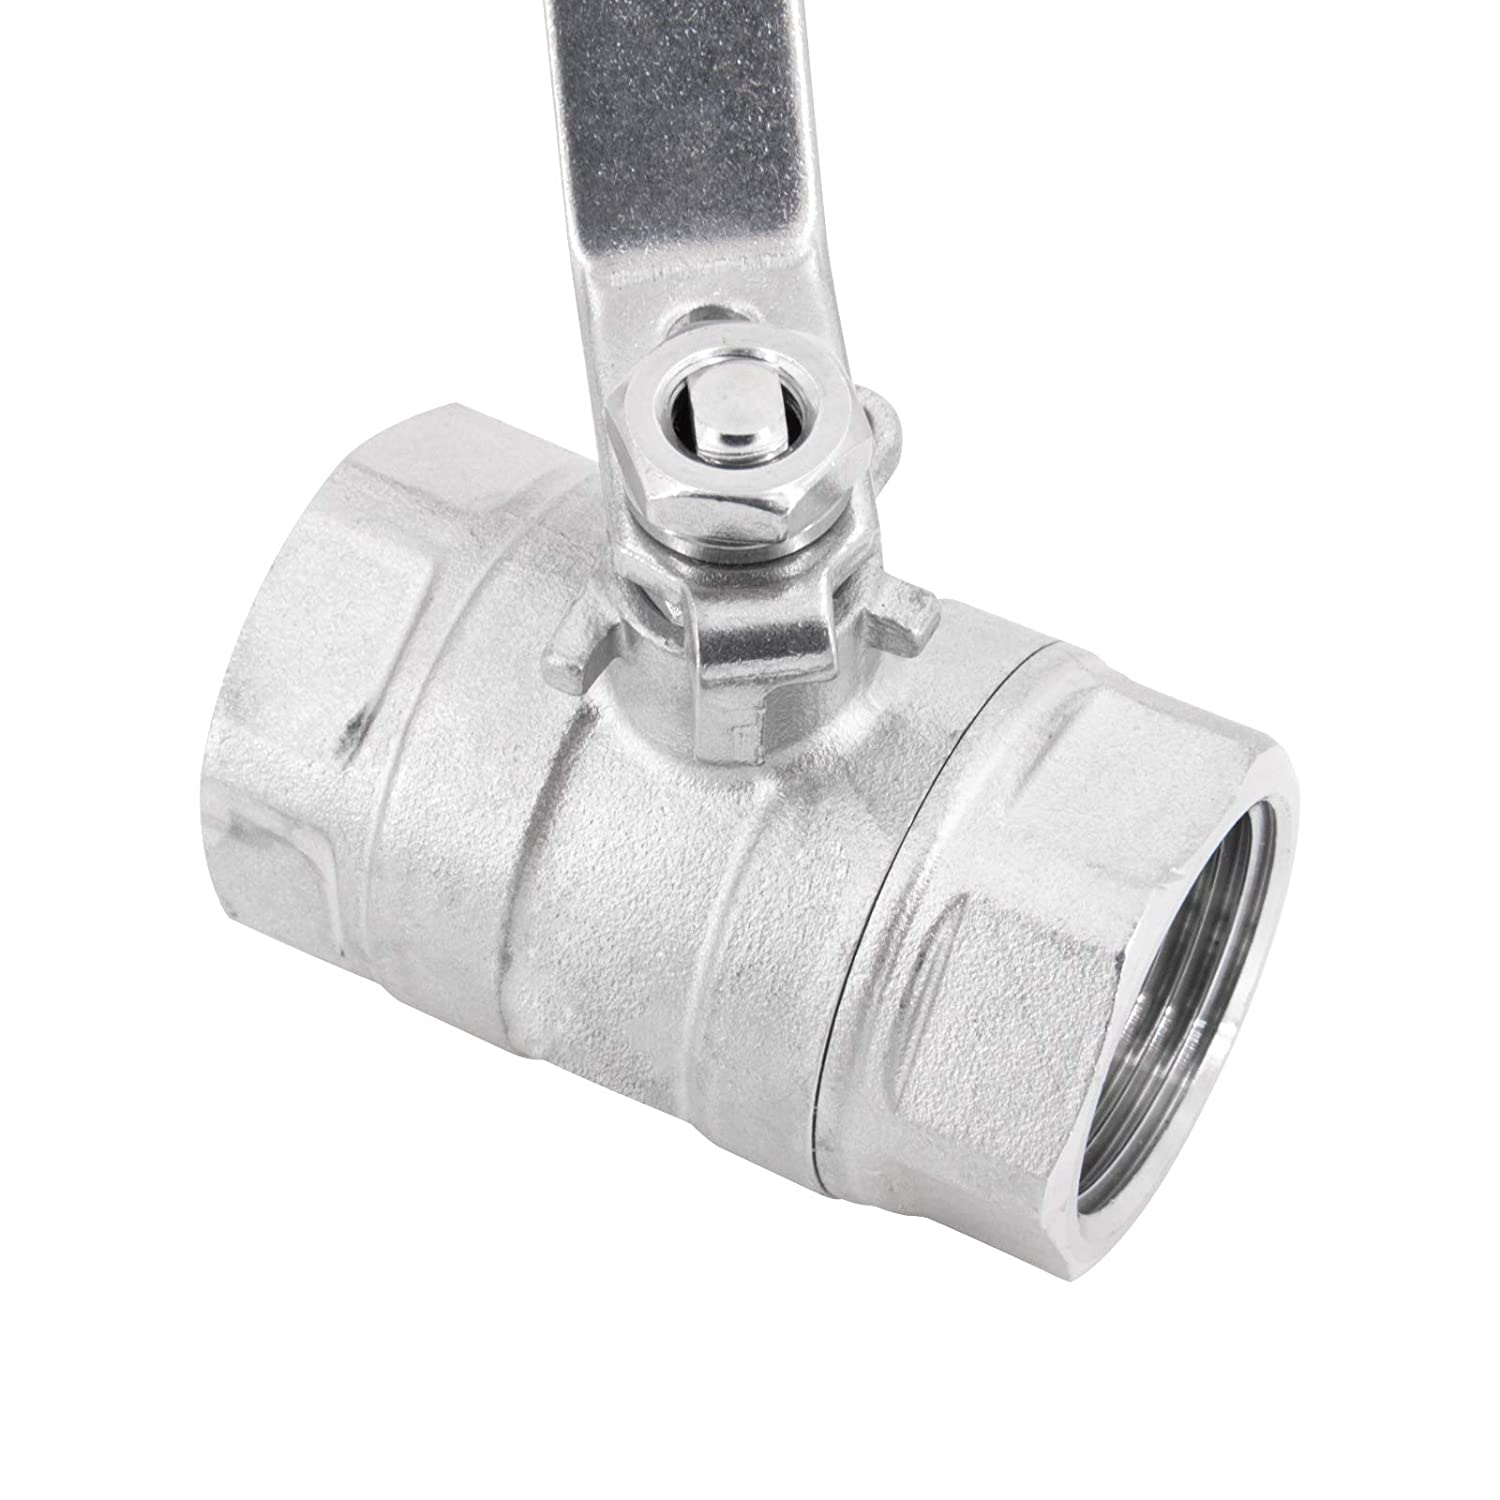 1//2 stainless steel ball valve with internal thread according to ISO 228//1 ball made of stainless steel AISI316 ball seal made of PTFE with hand lever PN40